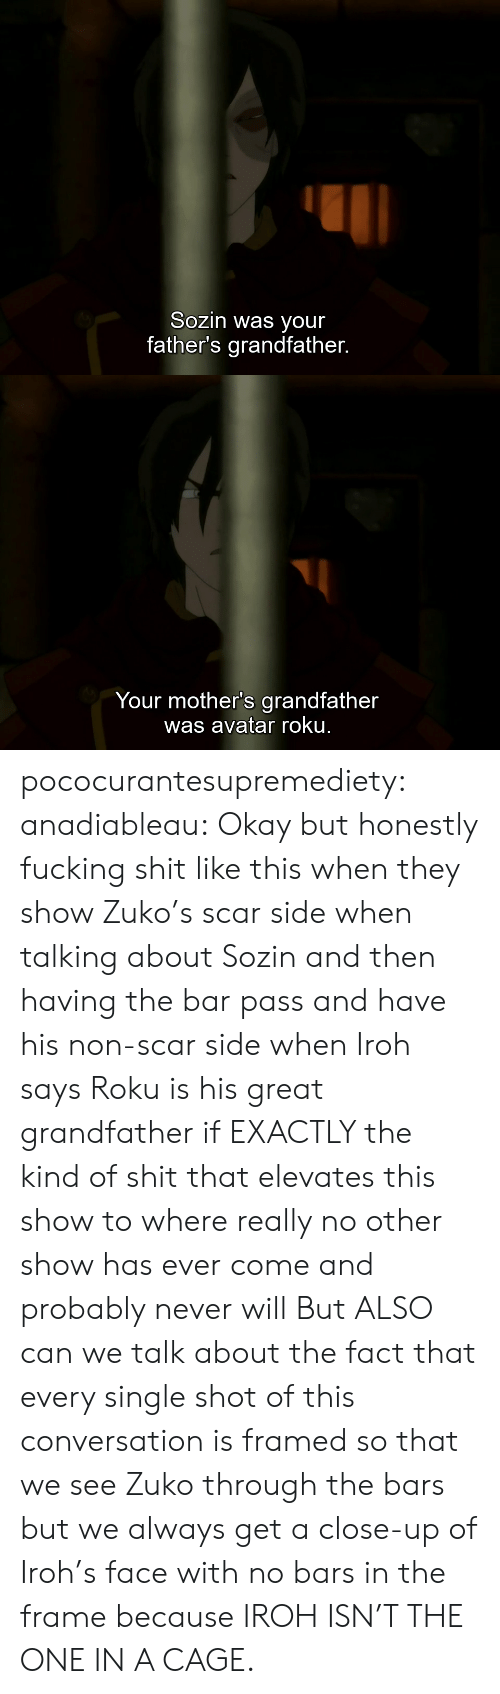 cage: Sozin was your  father's grandfather.   Your mother's grandfather  was avatar roku. pococurantesupremediety: anadiableau: Okay but honestly fucking shit like this when they show Zuko's scar side when talking about Sozin and then having the bar pass and have his non-scar side when Iroh says Roku is his great grandfather if EXACTLY the kind of shit that elevates this show to where really no other show has ever come and probably never will But ALSO can we talk about the fact that every single shot of this conversation is framed so that we see Zuko through the bars but we always get a close-up of Iroh's face with no bars in the frame because IROH ISN'T THE ONE IN A CAGE.